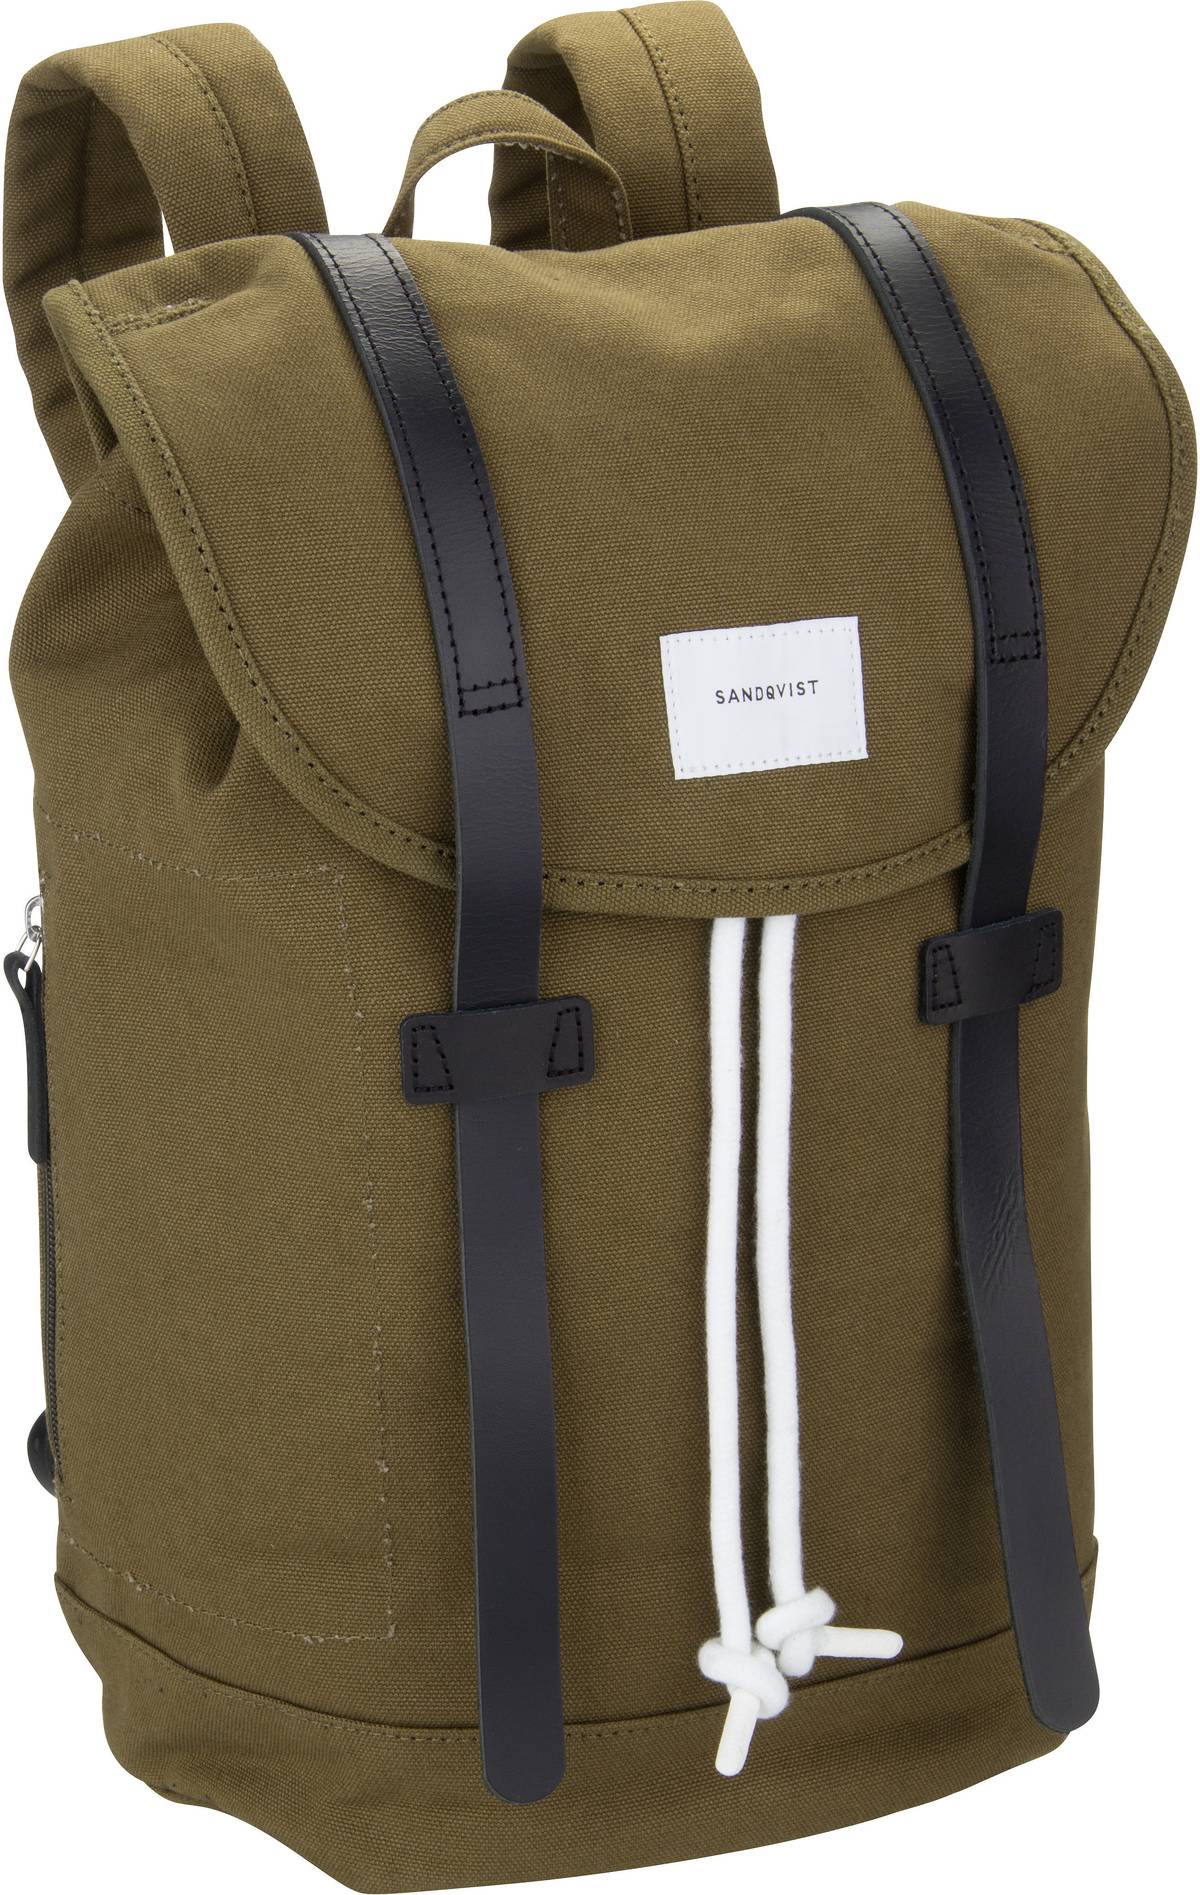 Rucksack / Daypack Stig Backpack Dark Olive/Black Leather